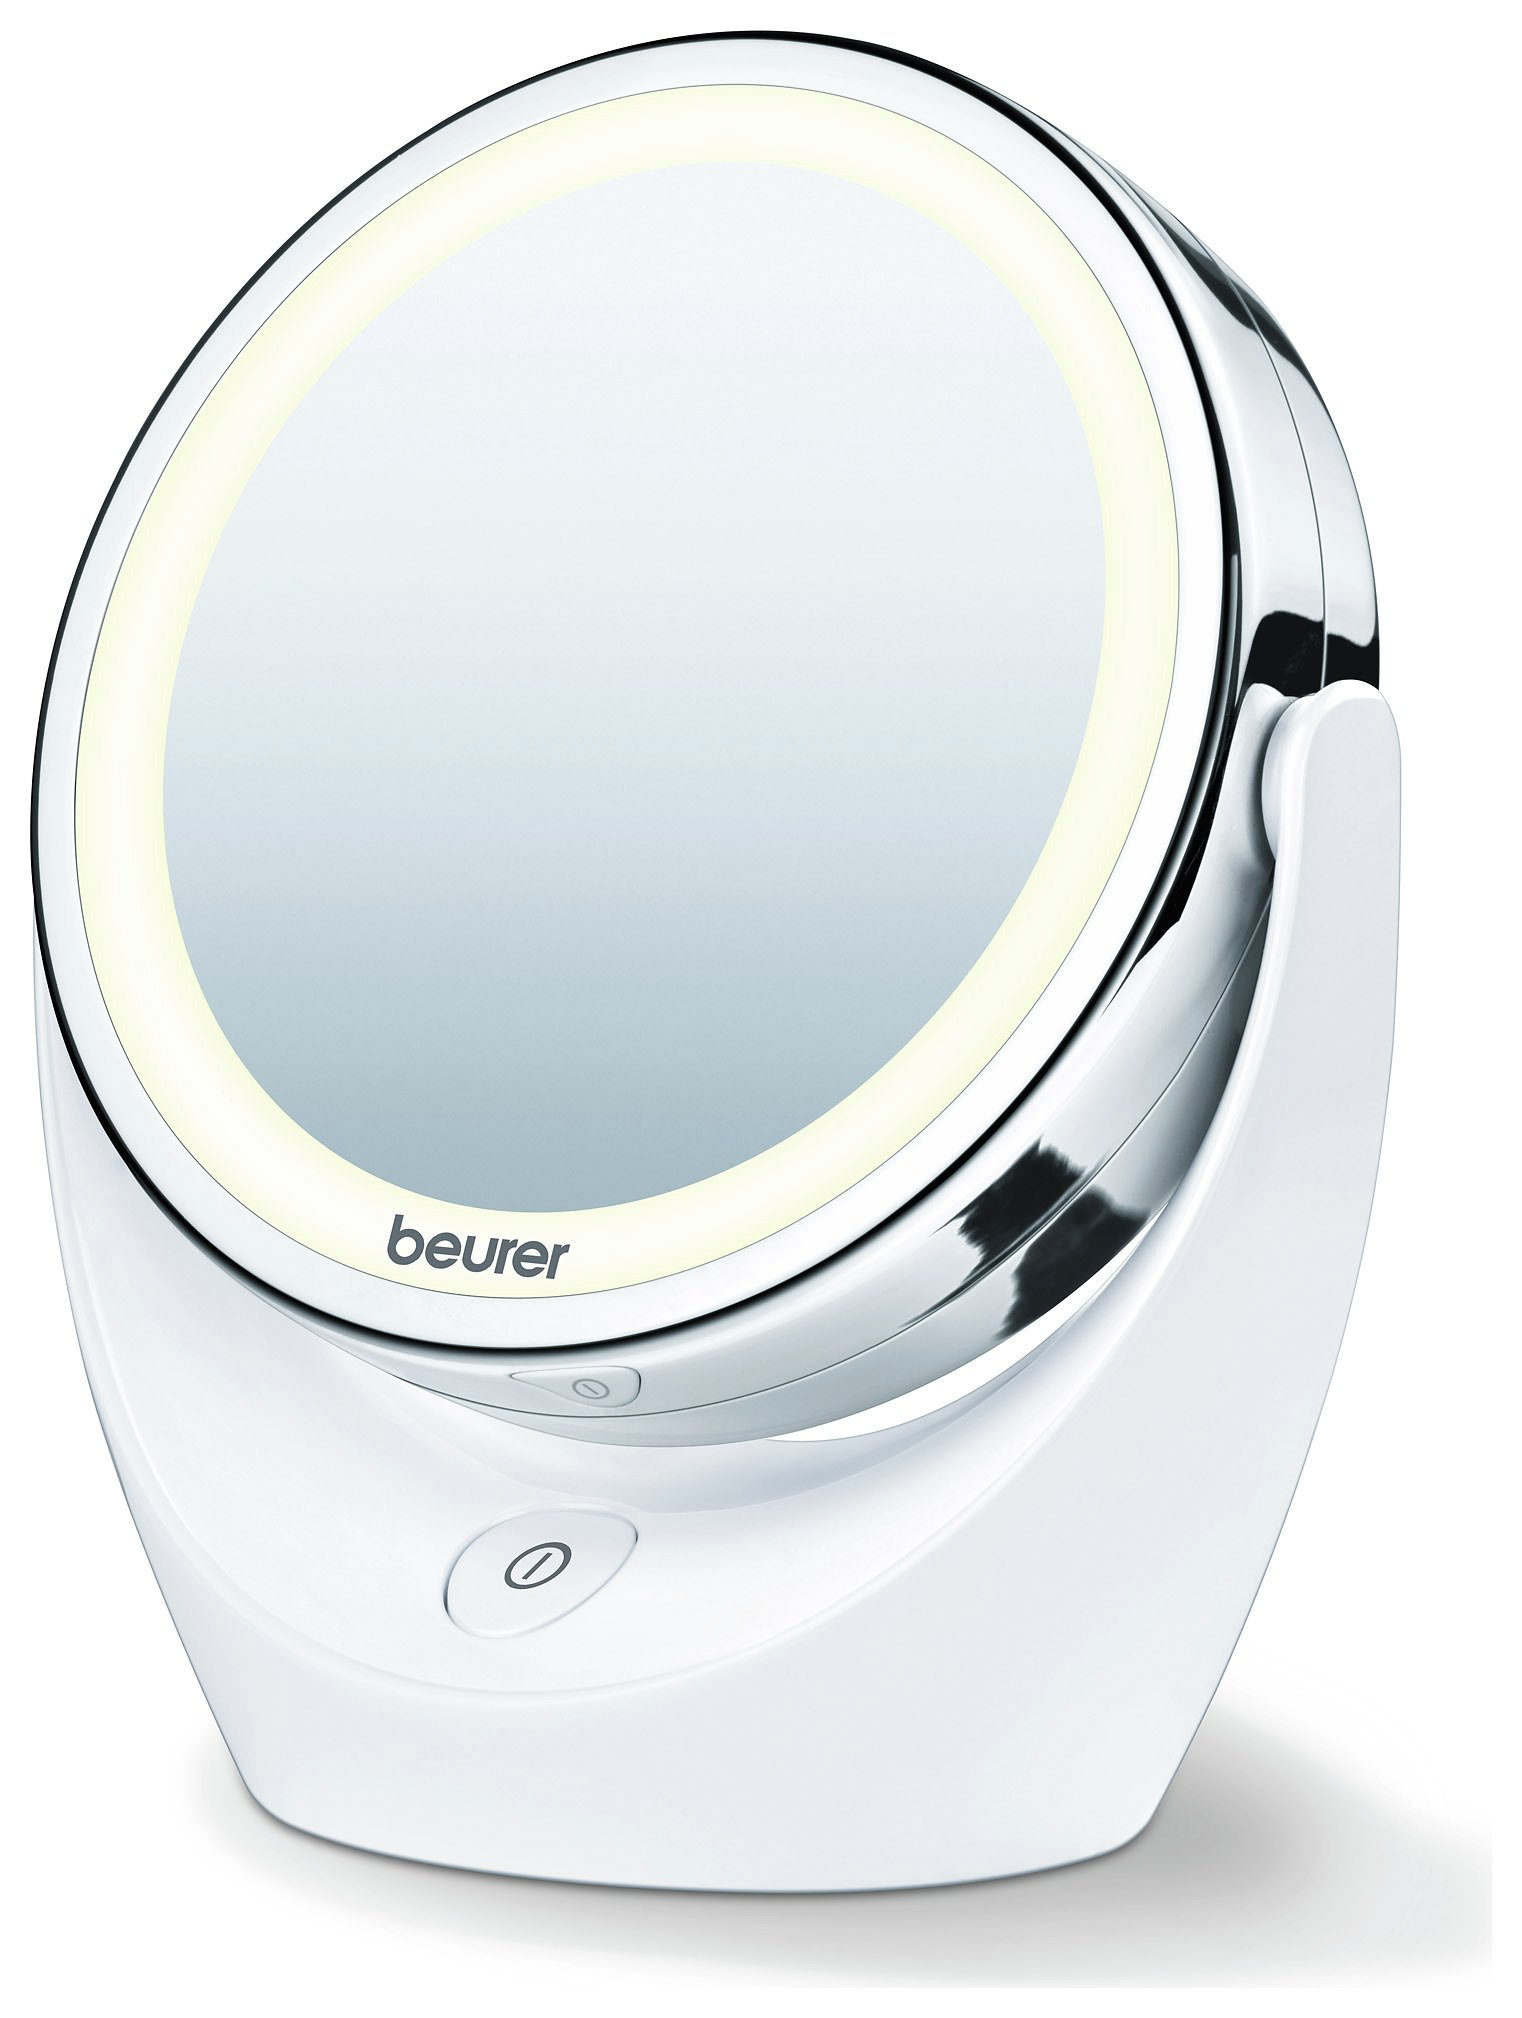 Image of Beurer BS49 Illuminated LED Free Standing Cosmetic Mirror.